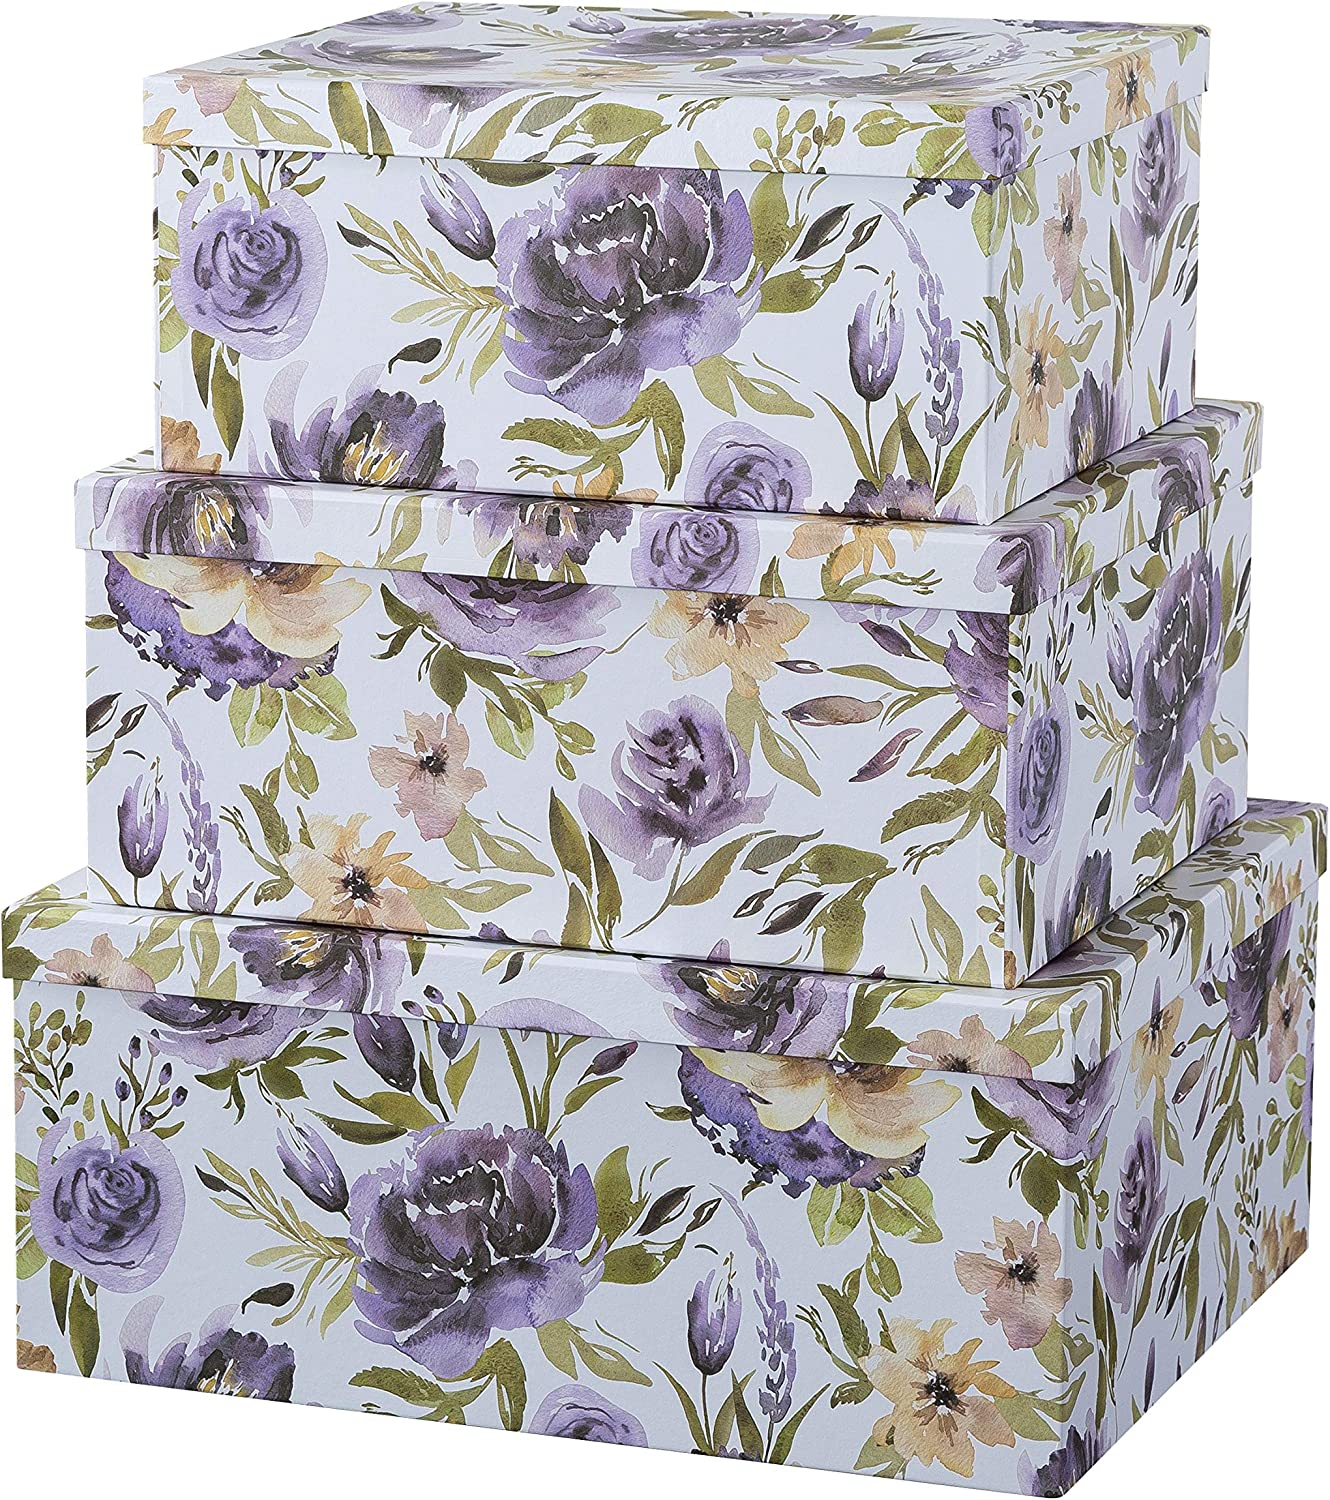 Soul & Lane Decorative Storage Cardboard Boxes with Lids | Purple Passion - Set of 3 | Floral Paperboard Nesting Boxes